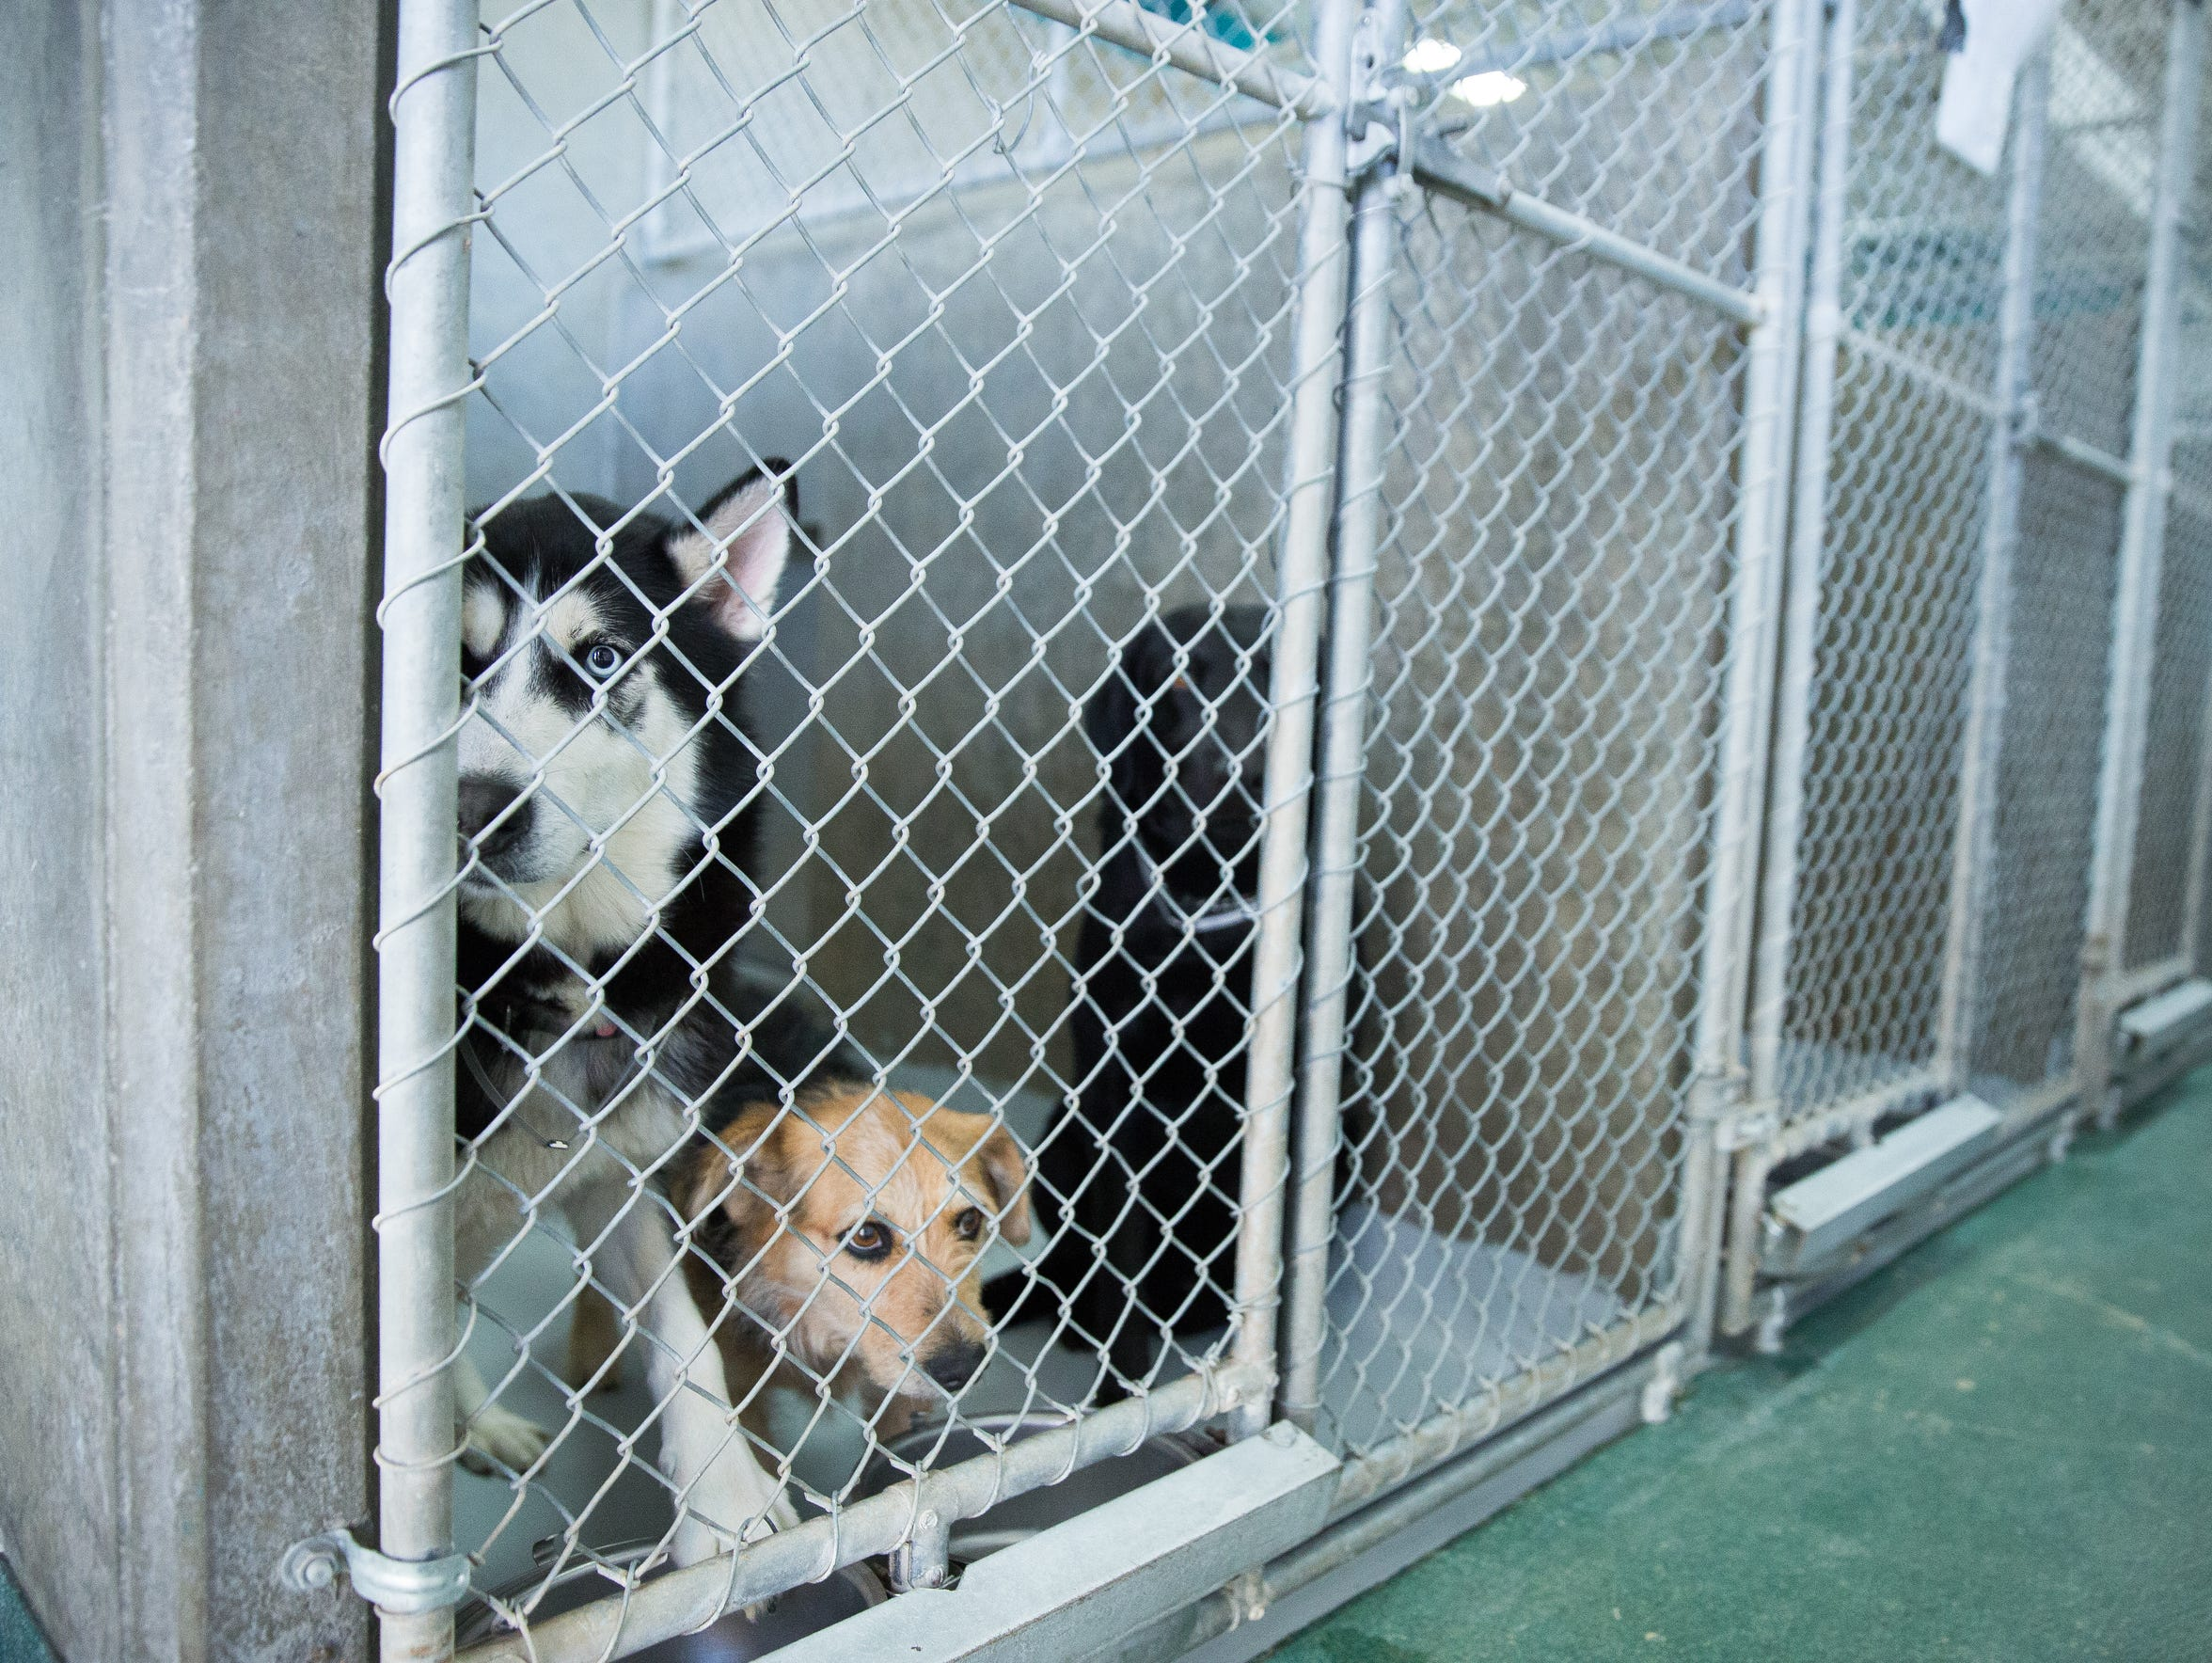 The Animal Service Center of the Mesilla Valley is the shelter with the highest intake of animals per capita in the nation.